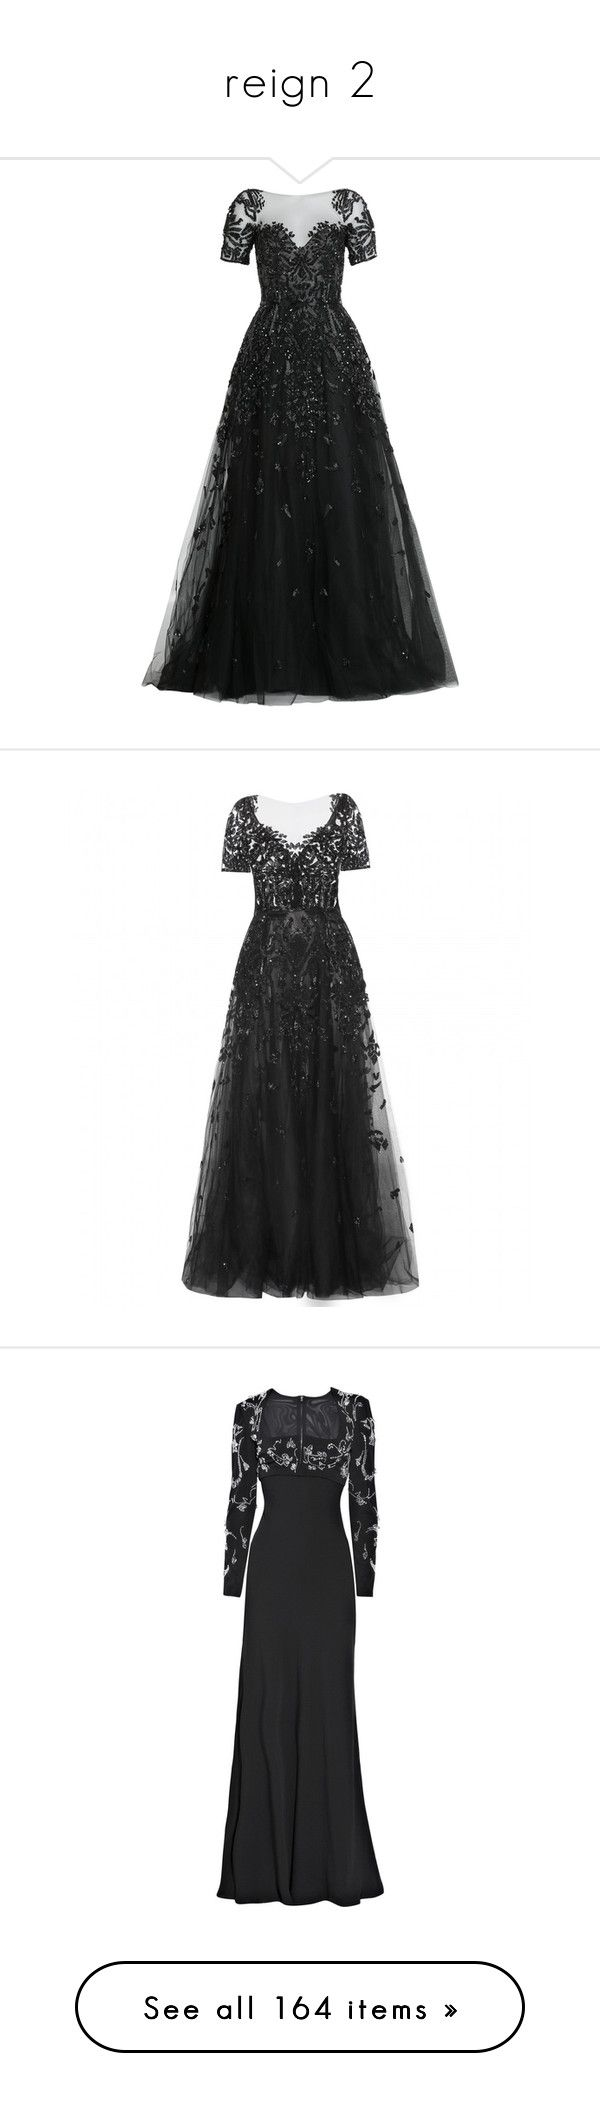 """""""reign 2"""" by rebellious-ingenue ❤ liked on Polyvore featuring dresses, gowns, long dresses, vestidos, black, sparkly dresses, beaded evening dresses, sheer overlay dress, long beaded dress and beaded evening gowns"""